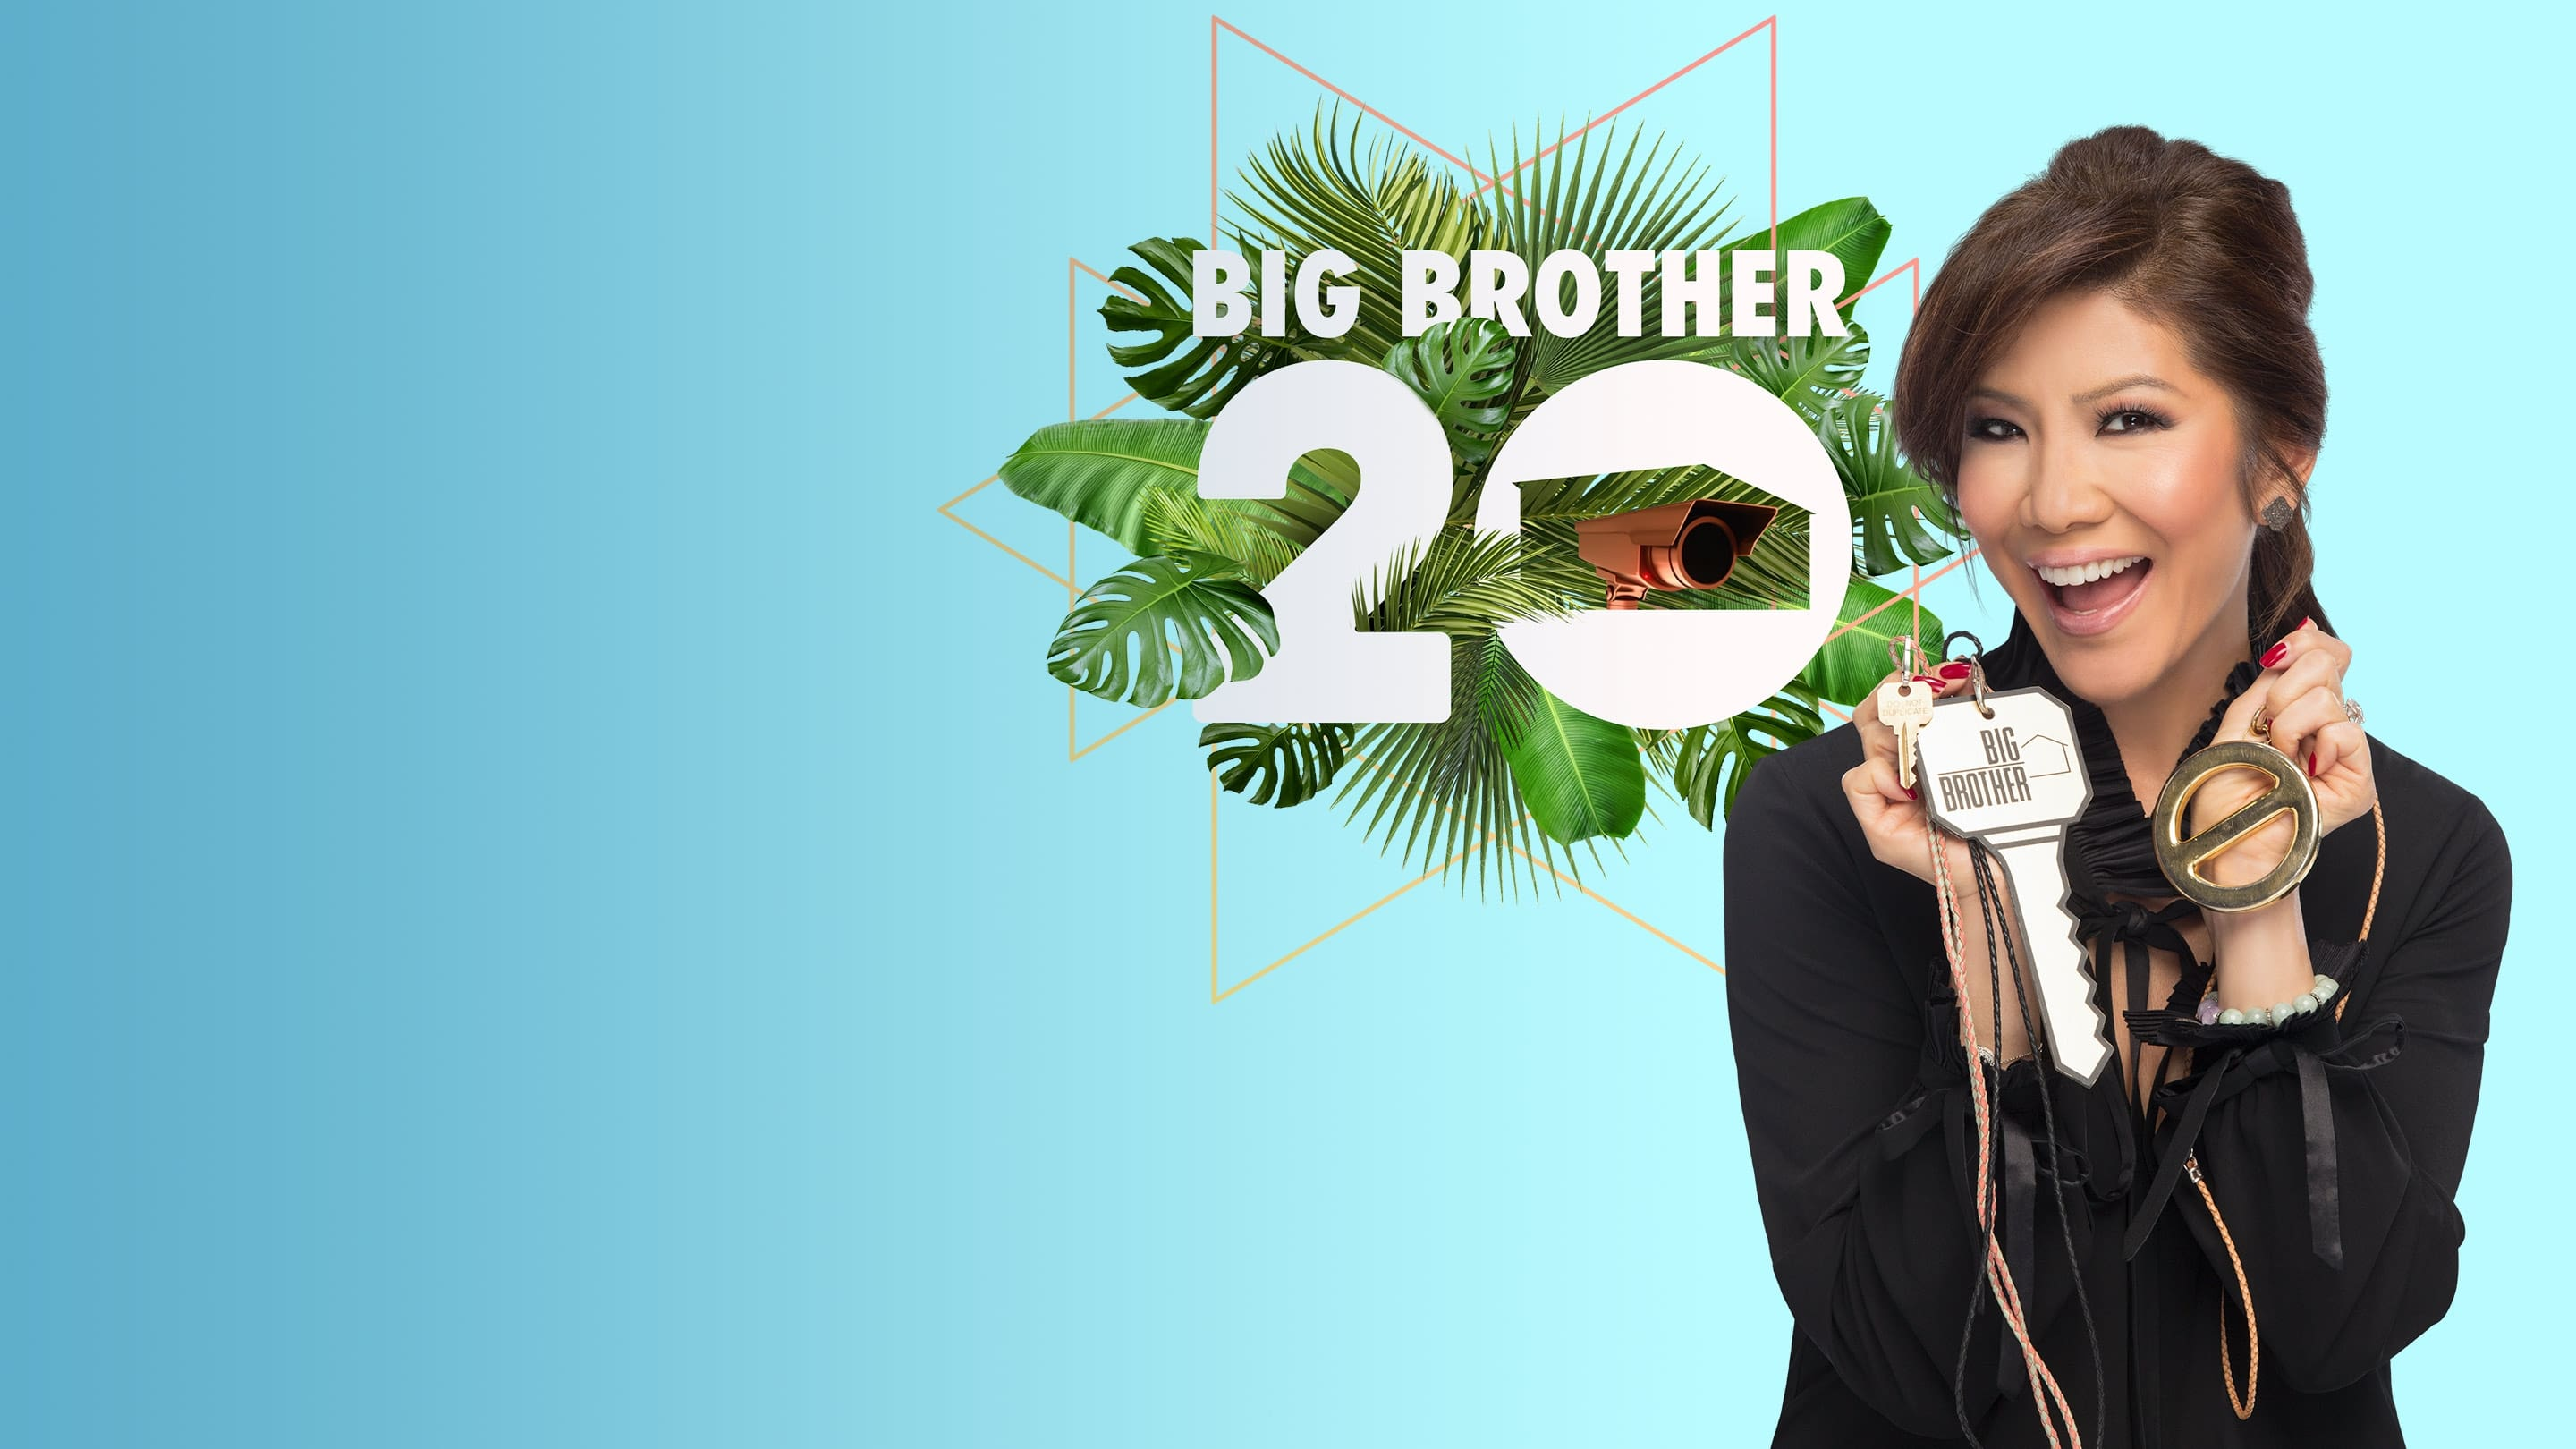 Big Brother - Season 14